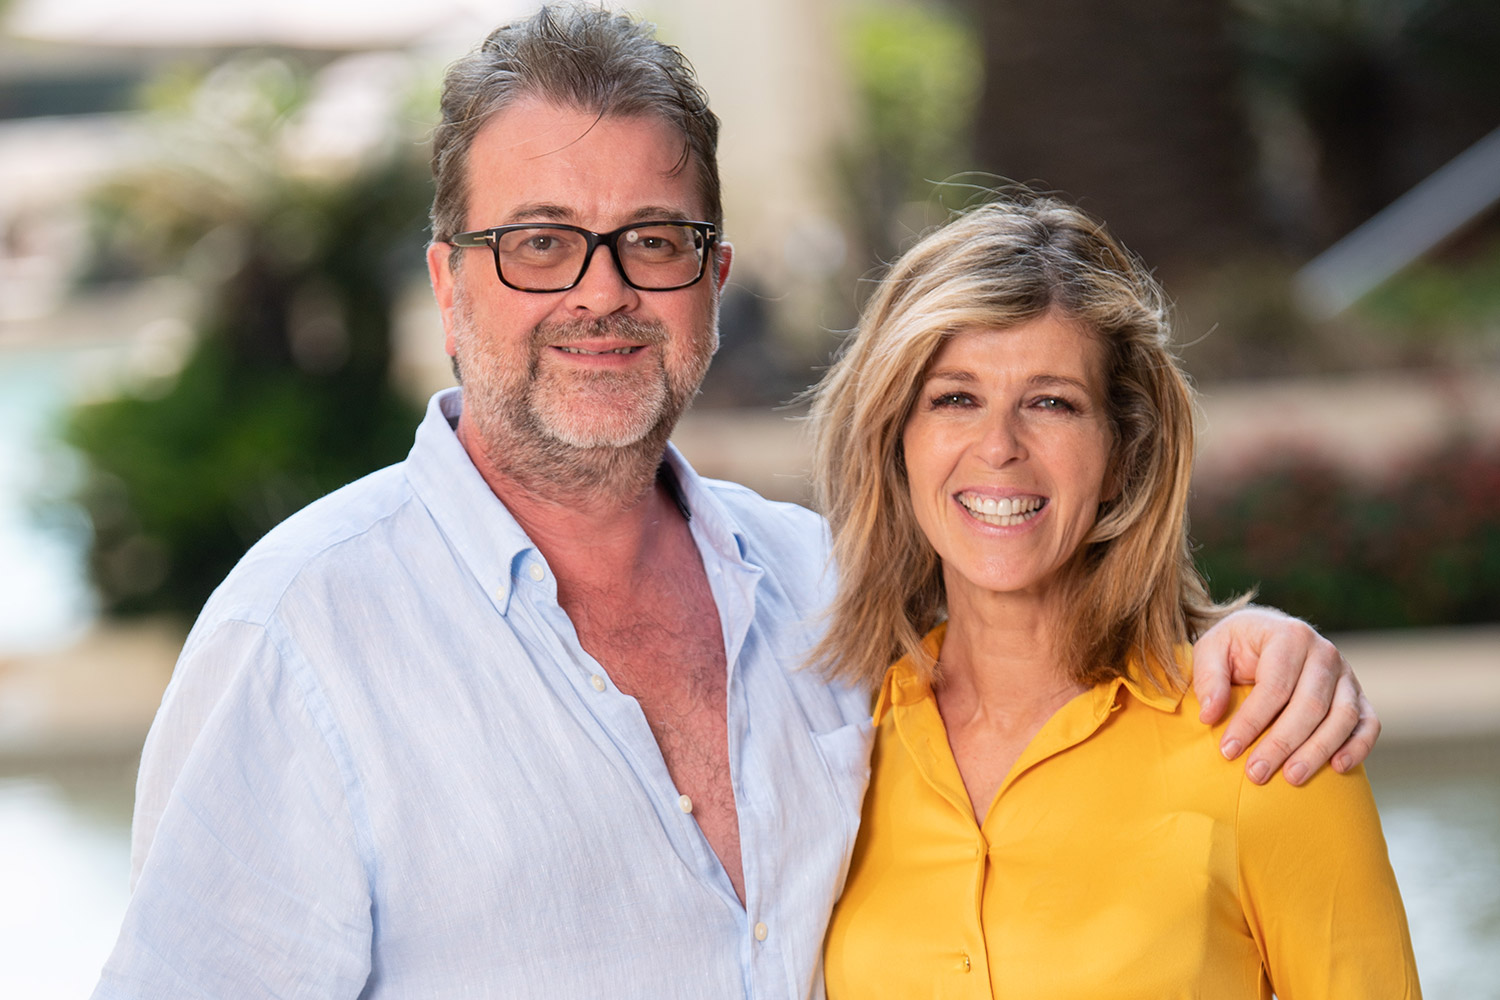 Derek Draper and Kate Garraway